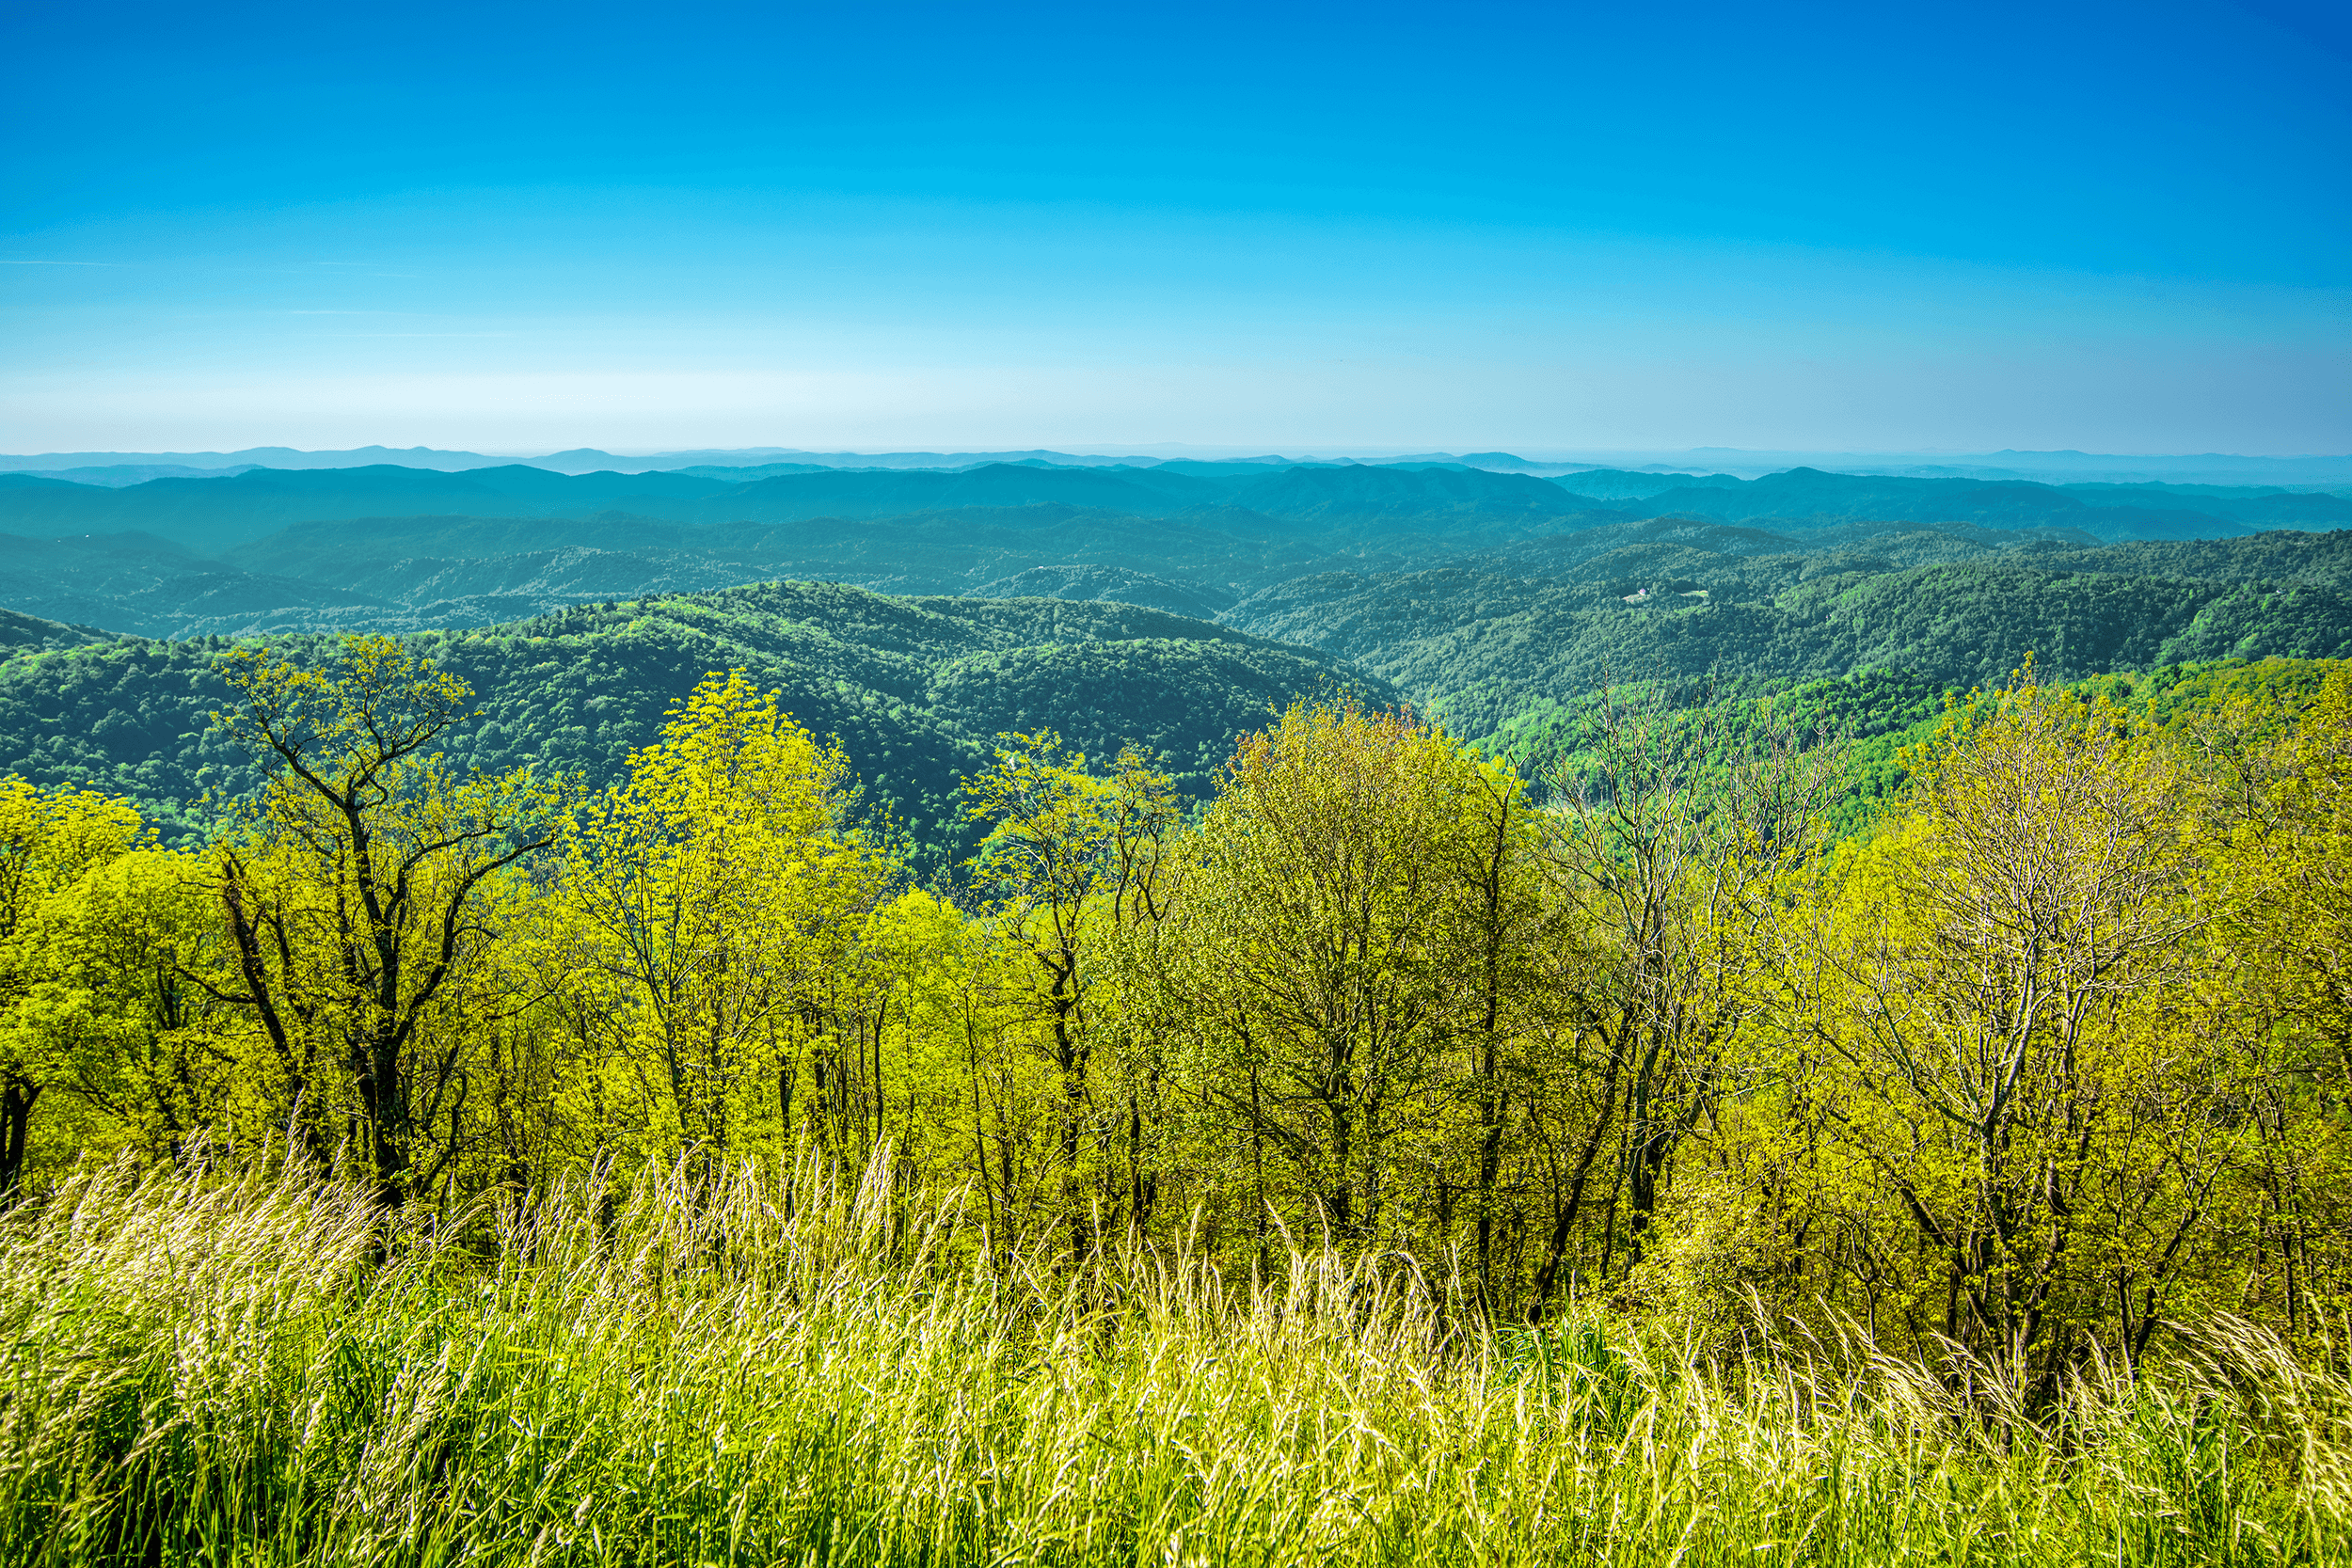 The  Thunder Hill Overlook  is a popular photo stop. From an elevation of 3,795 feet (1,157 meters), you can take stunning panoramas of the Piedmont below. For best pictures, you may want to visit the overlook in the late afternoon or in the evening, when the sun is behind you, or in the early morning, when the sun shines from the east.